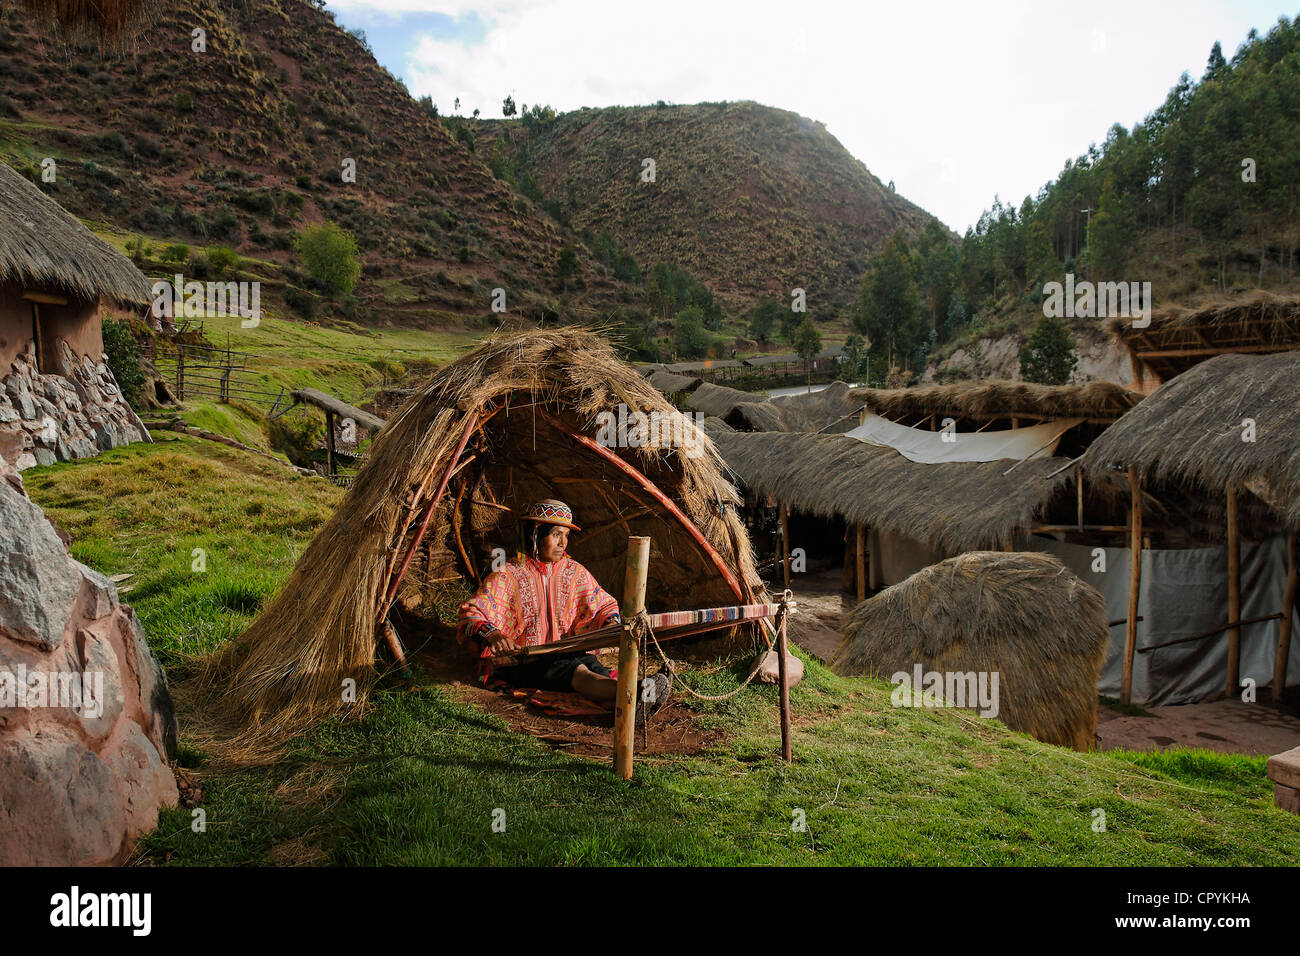 Peru, Cuzco Province, Cuzco, weaving workshop in an amerindian community - Stock Image